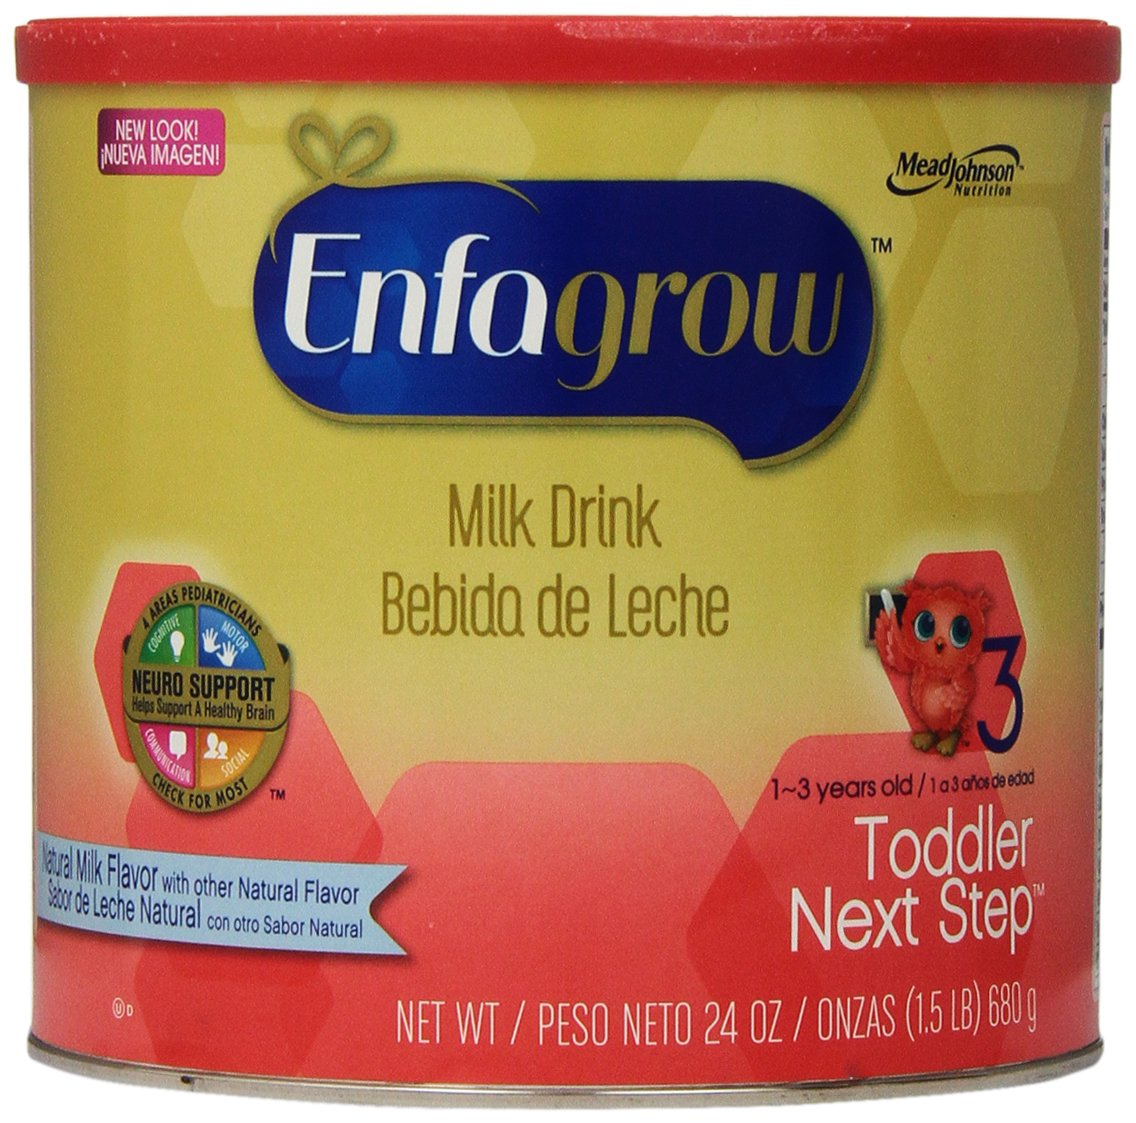 Enfagrow Toddler Next Step Toddler Milk Drink - Natural Milk Flavor - Powder - 24 oz - 4 pk